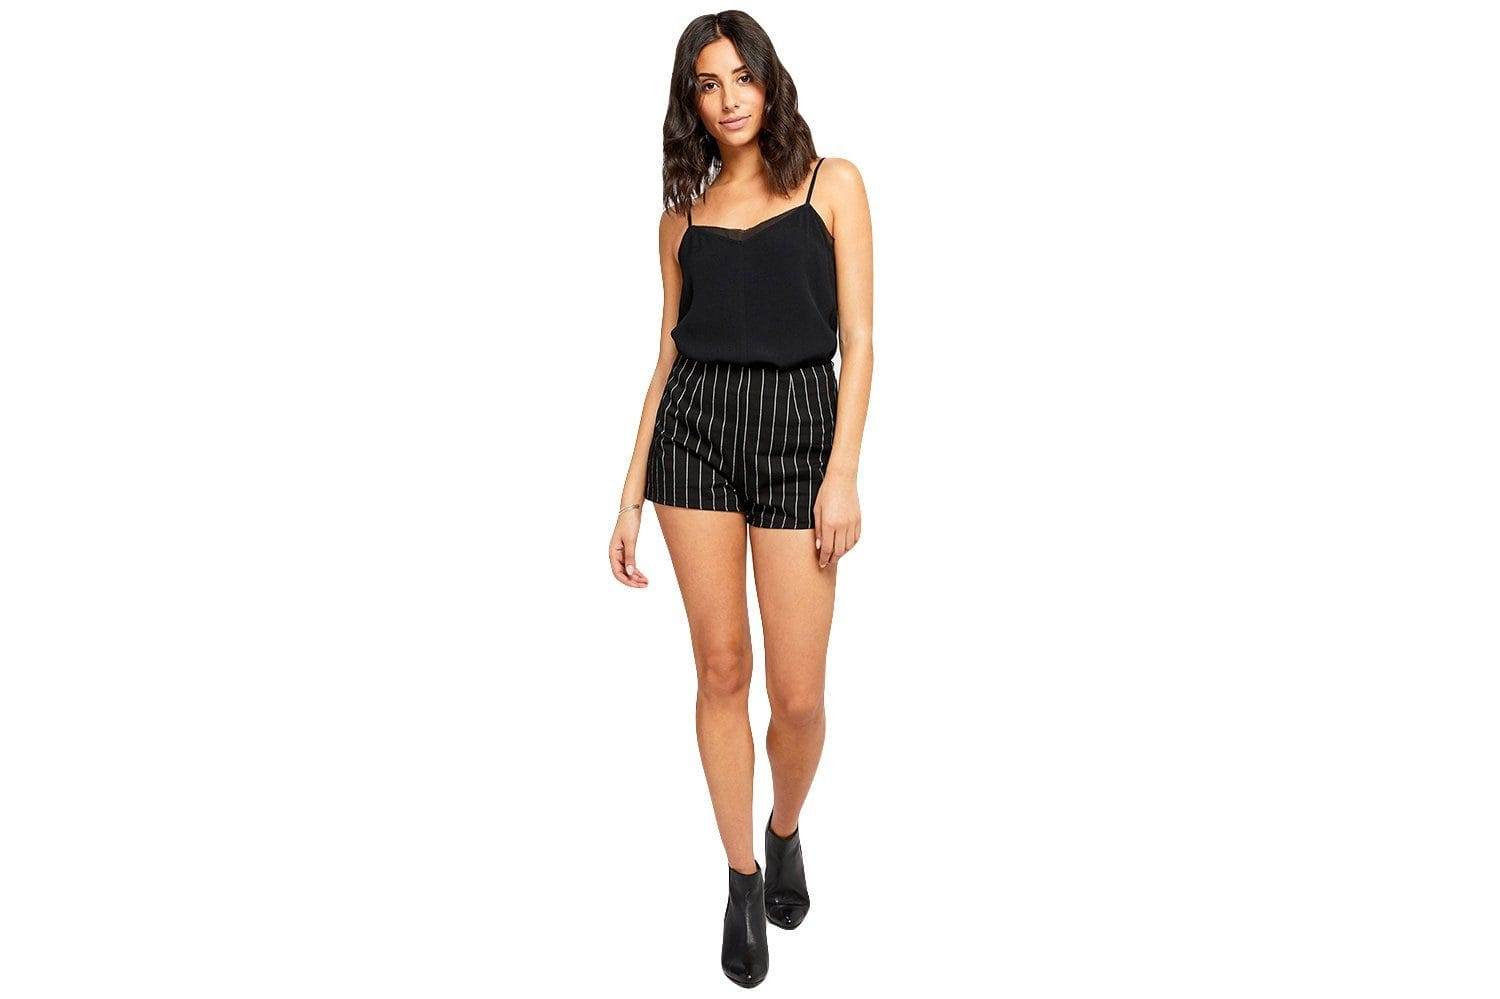 PIERCE - GF191-7114 WOMENS SOFTGOODS GENTLEFAWN BLACK STRIPE 10